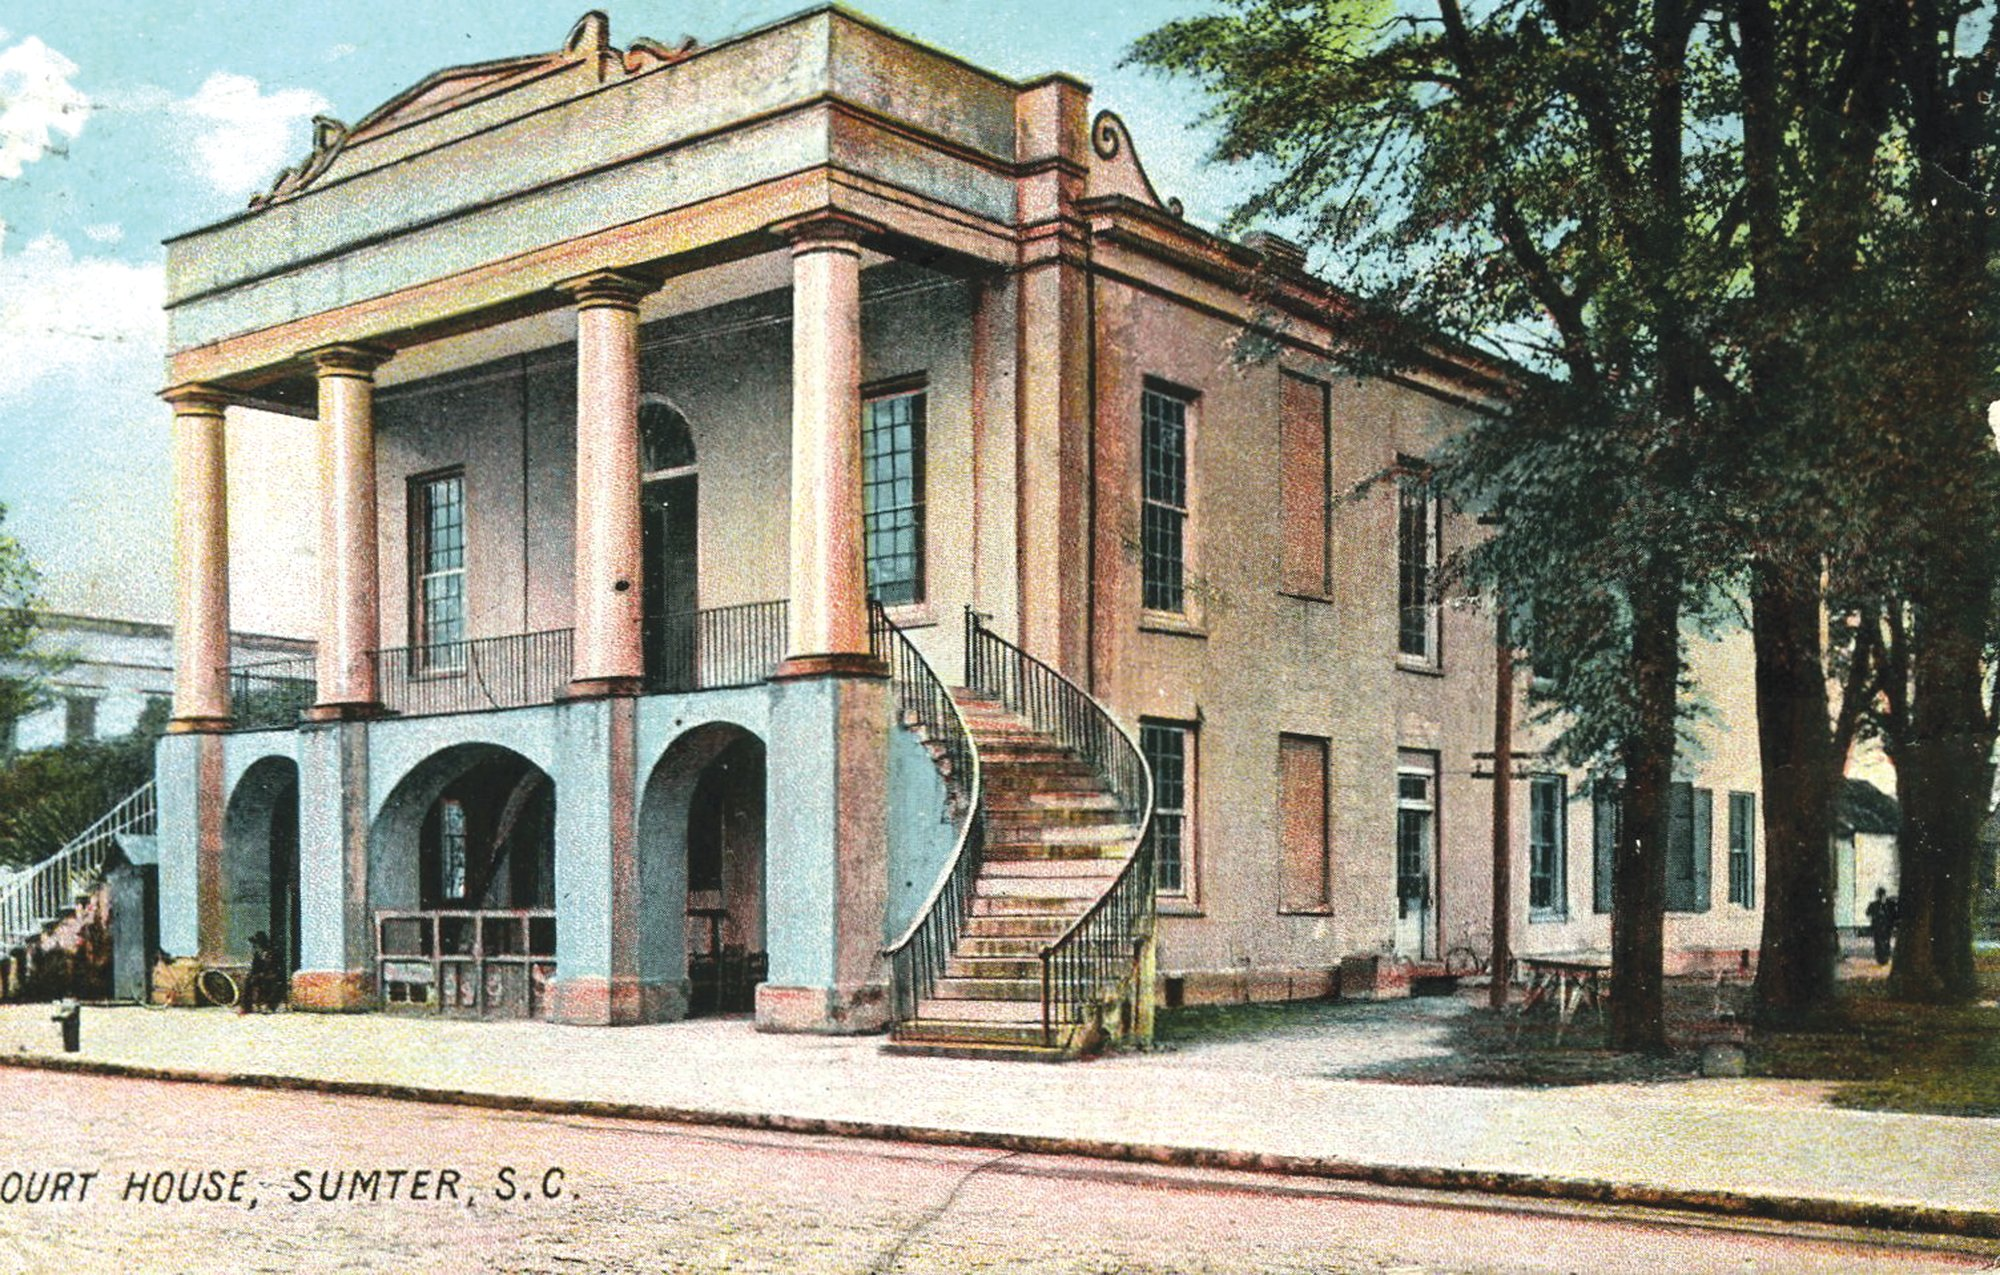 The city's second courthouse is seen in this postcard.